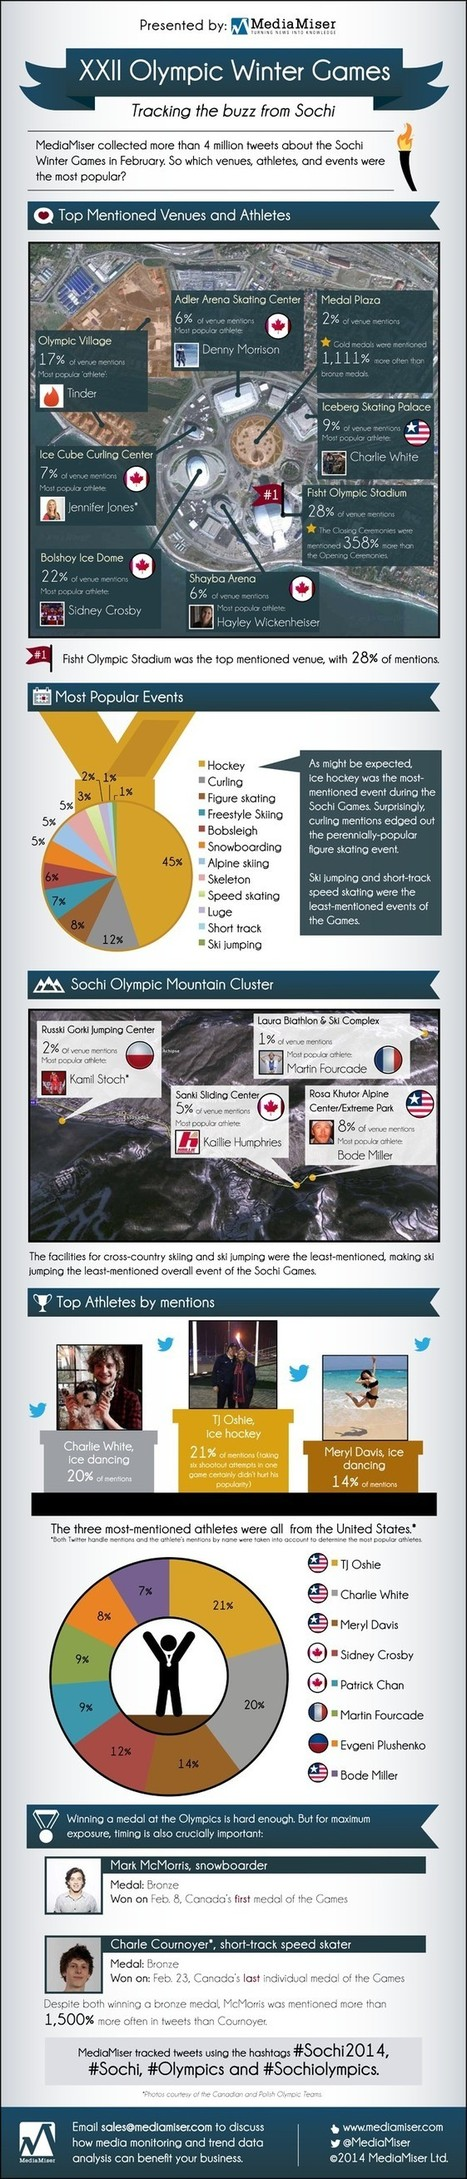 Sports - 2014 Sochi XXII Olympic Winter Games   All Infographics   Scoop.it